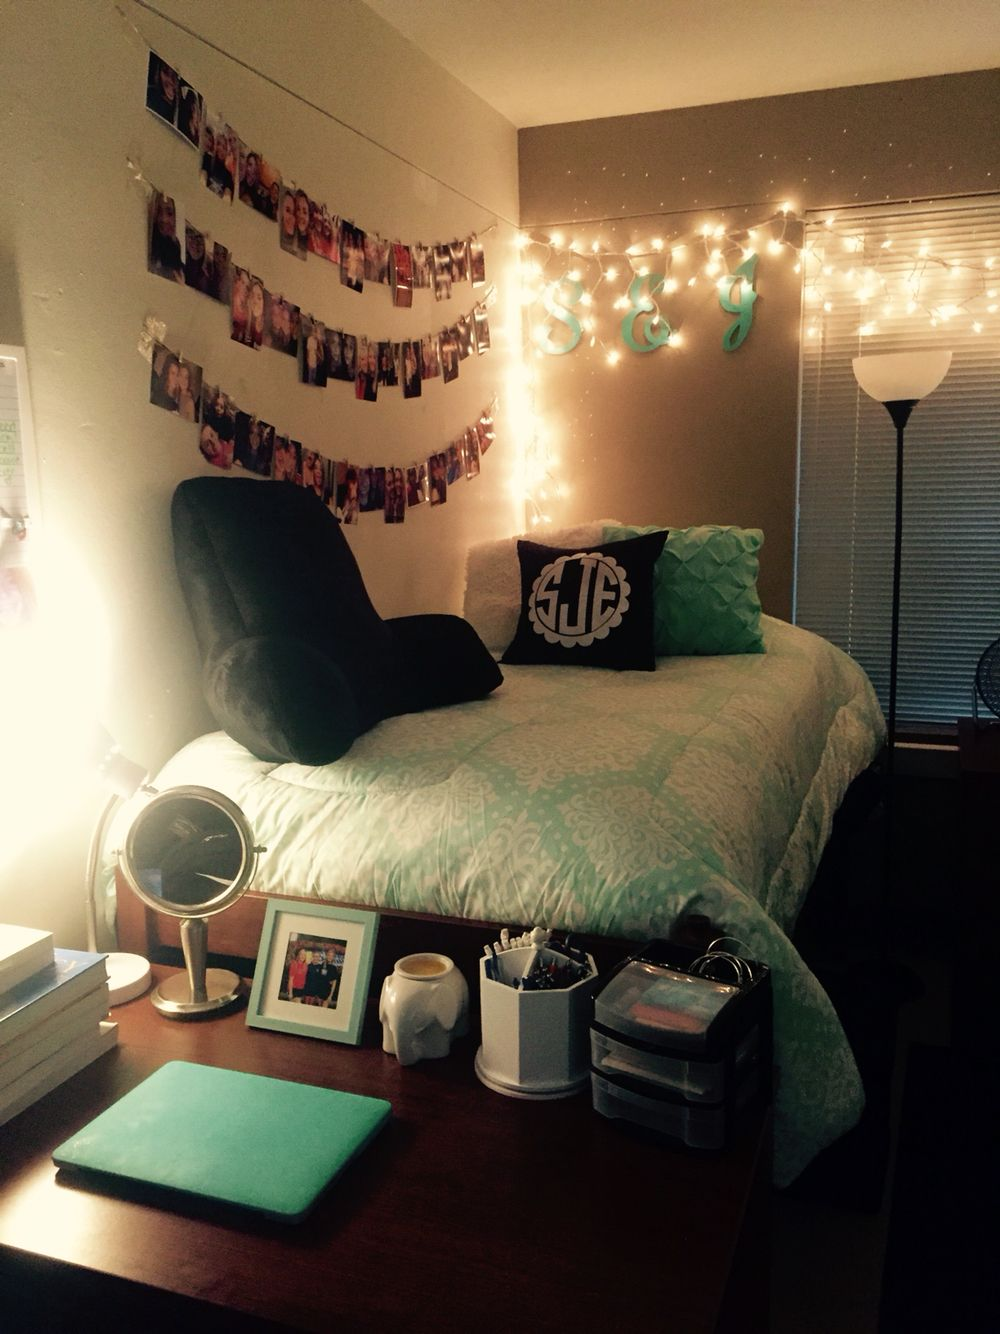 College Dorm Room 2015 Definitely Love The Lights And Hanging Pictures Here! Part 59